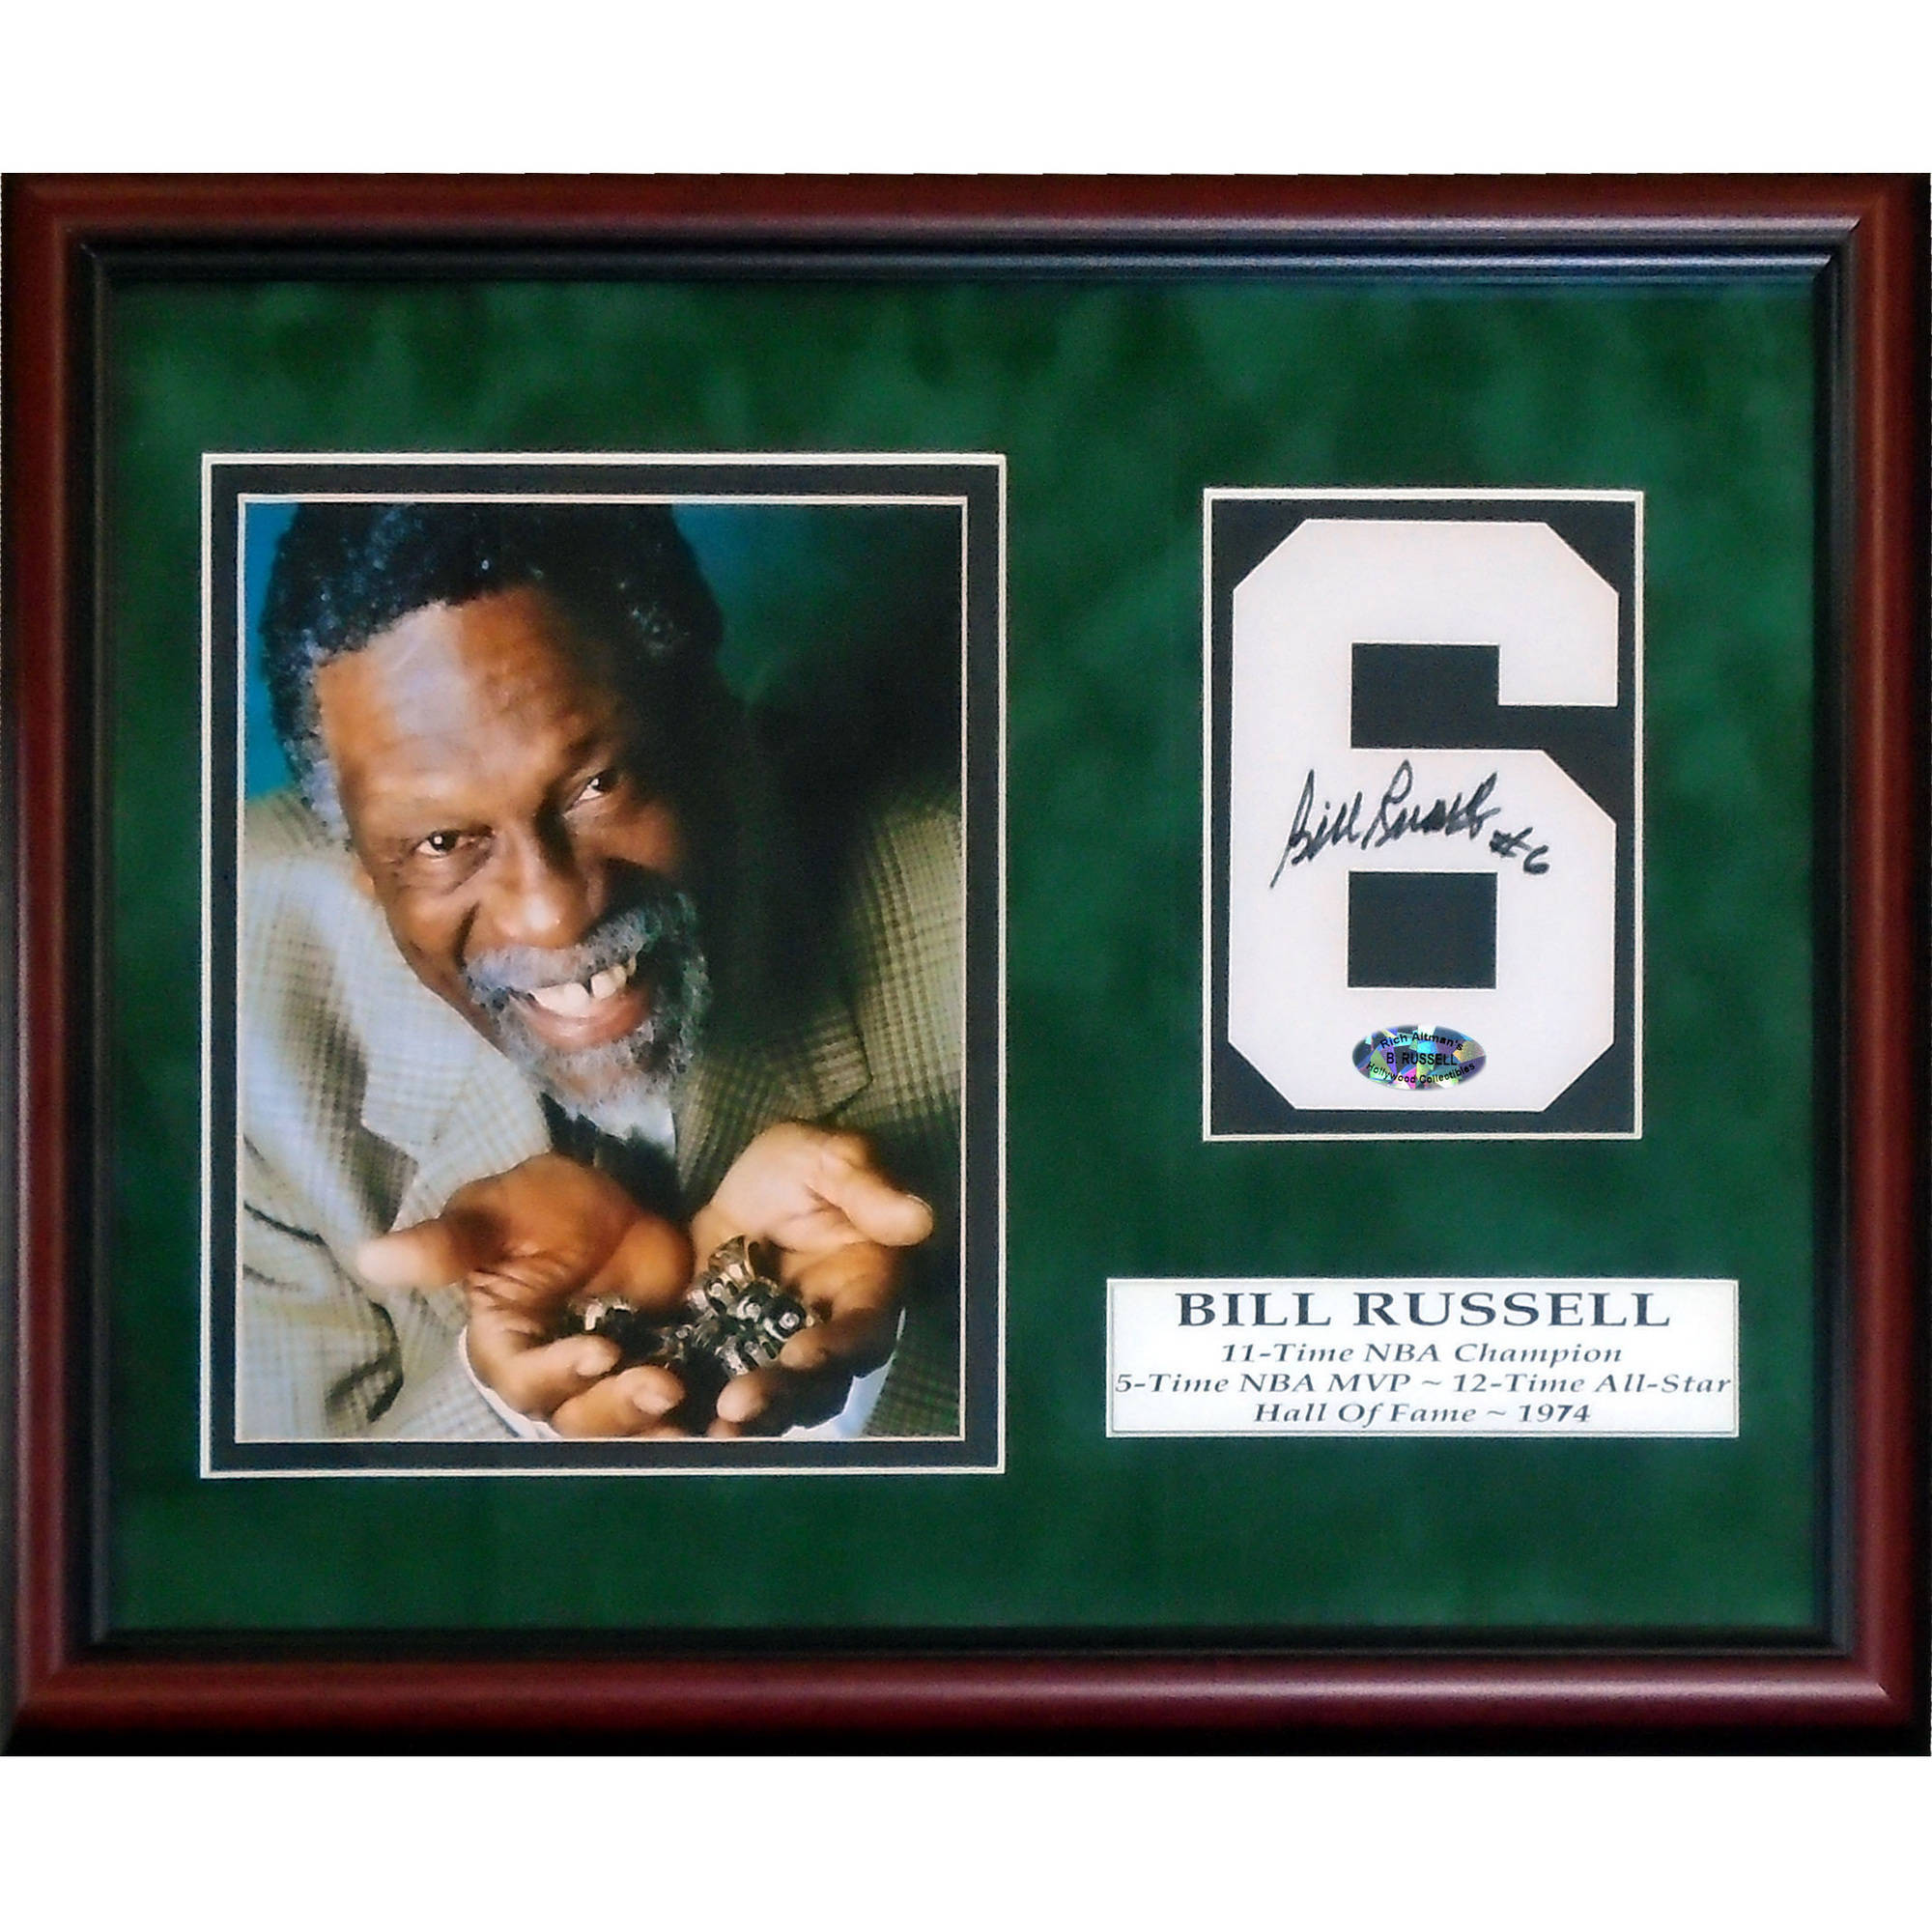 Bill Russell Autographed Jersey Number and 8 x 10 Photo Framed